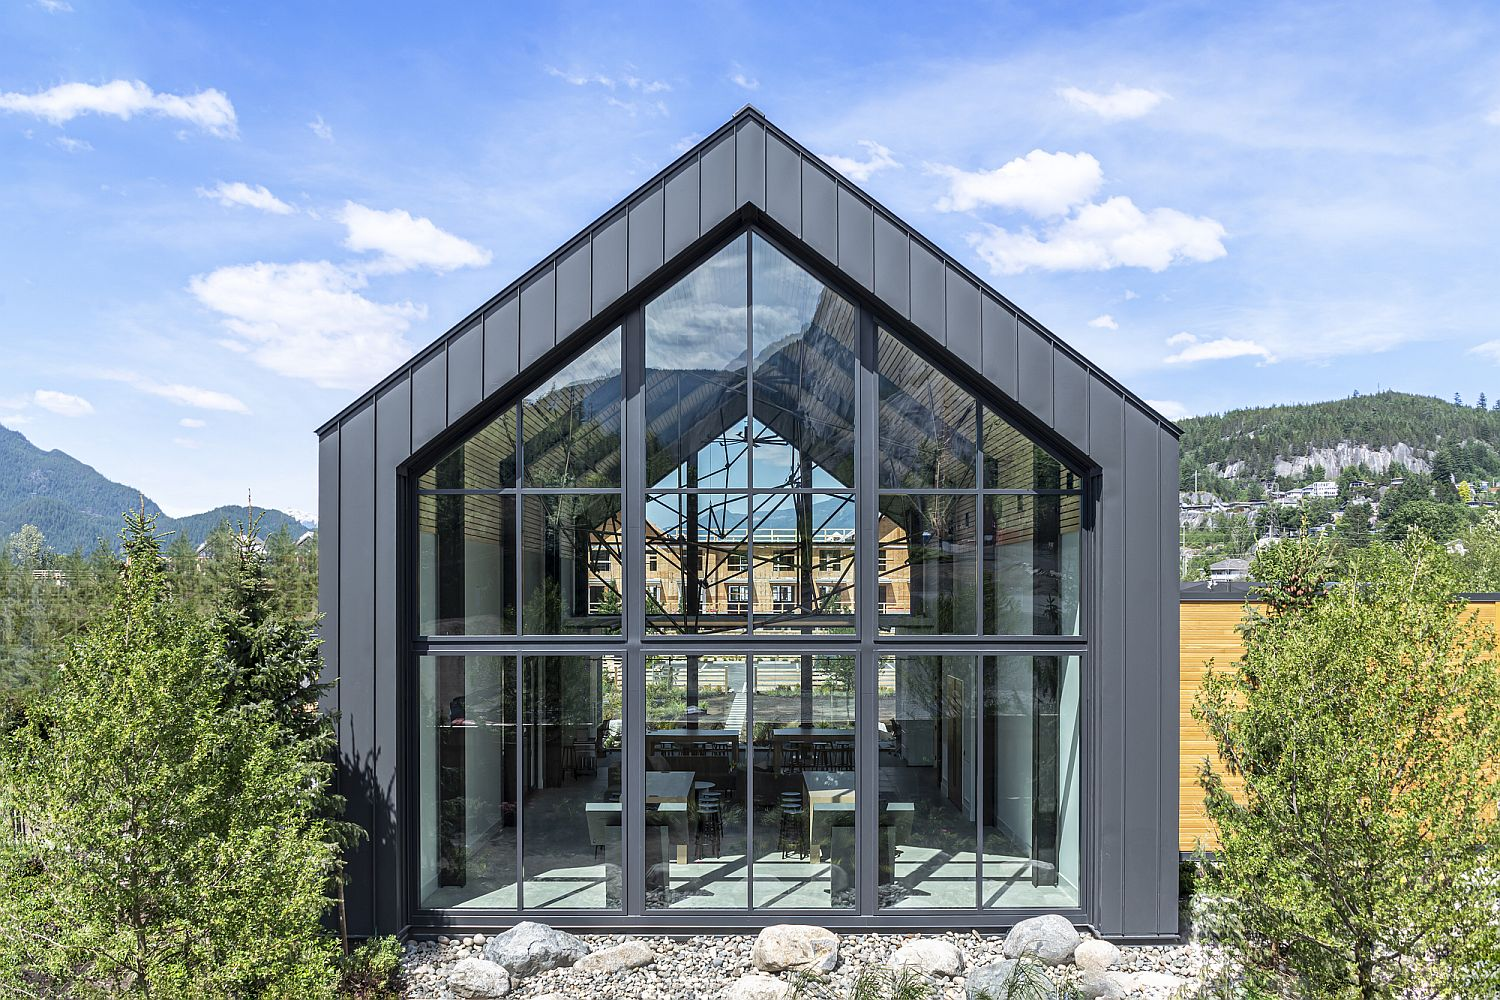 Dark-metal-panels-along-with-glass-create-a-delightful-gable-design